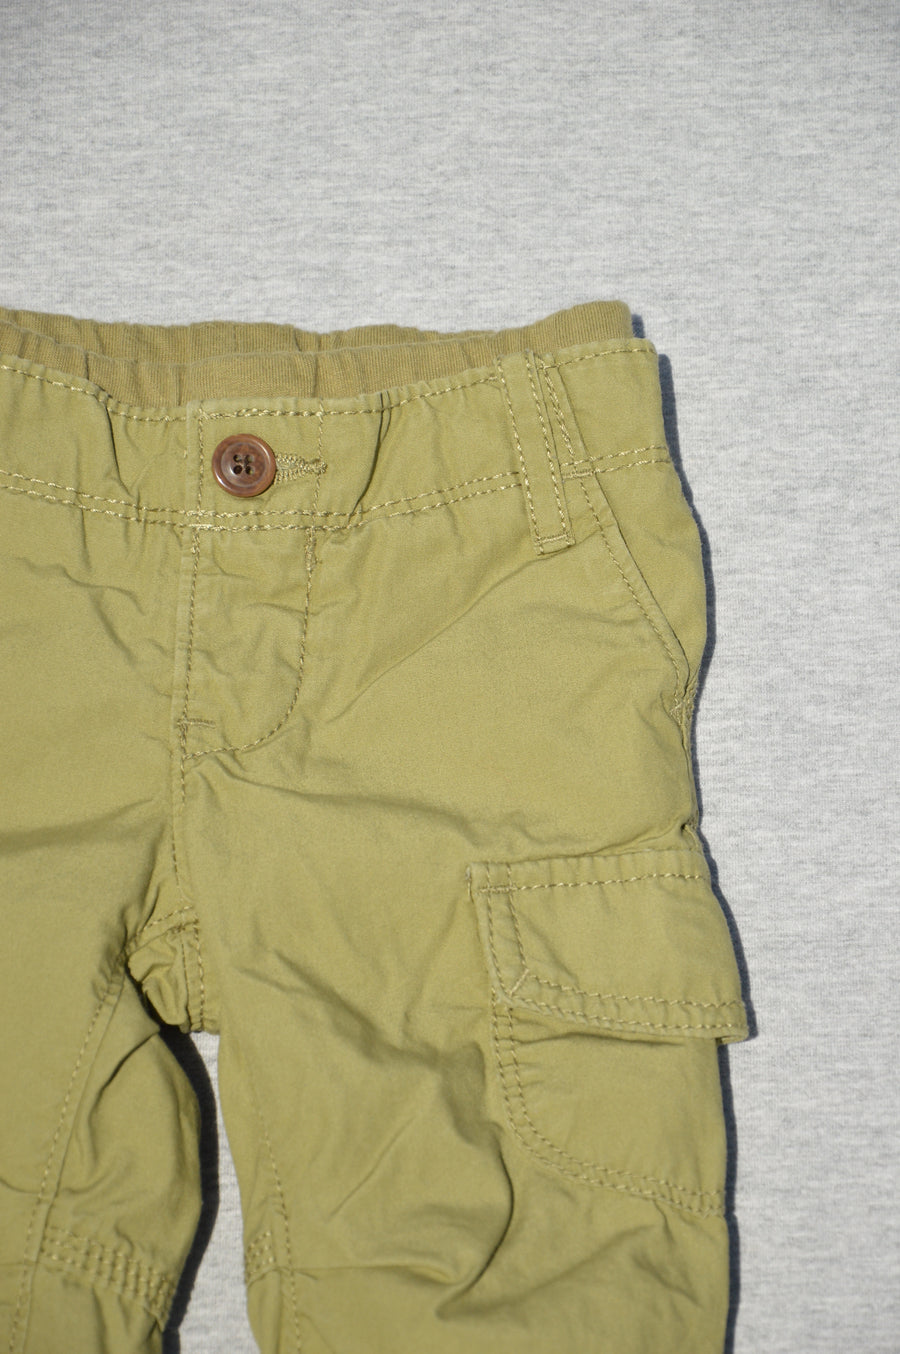 Gap - nearly new - fully lined olive cargo pants, size 3-6m